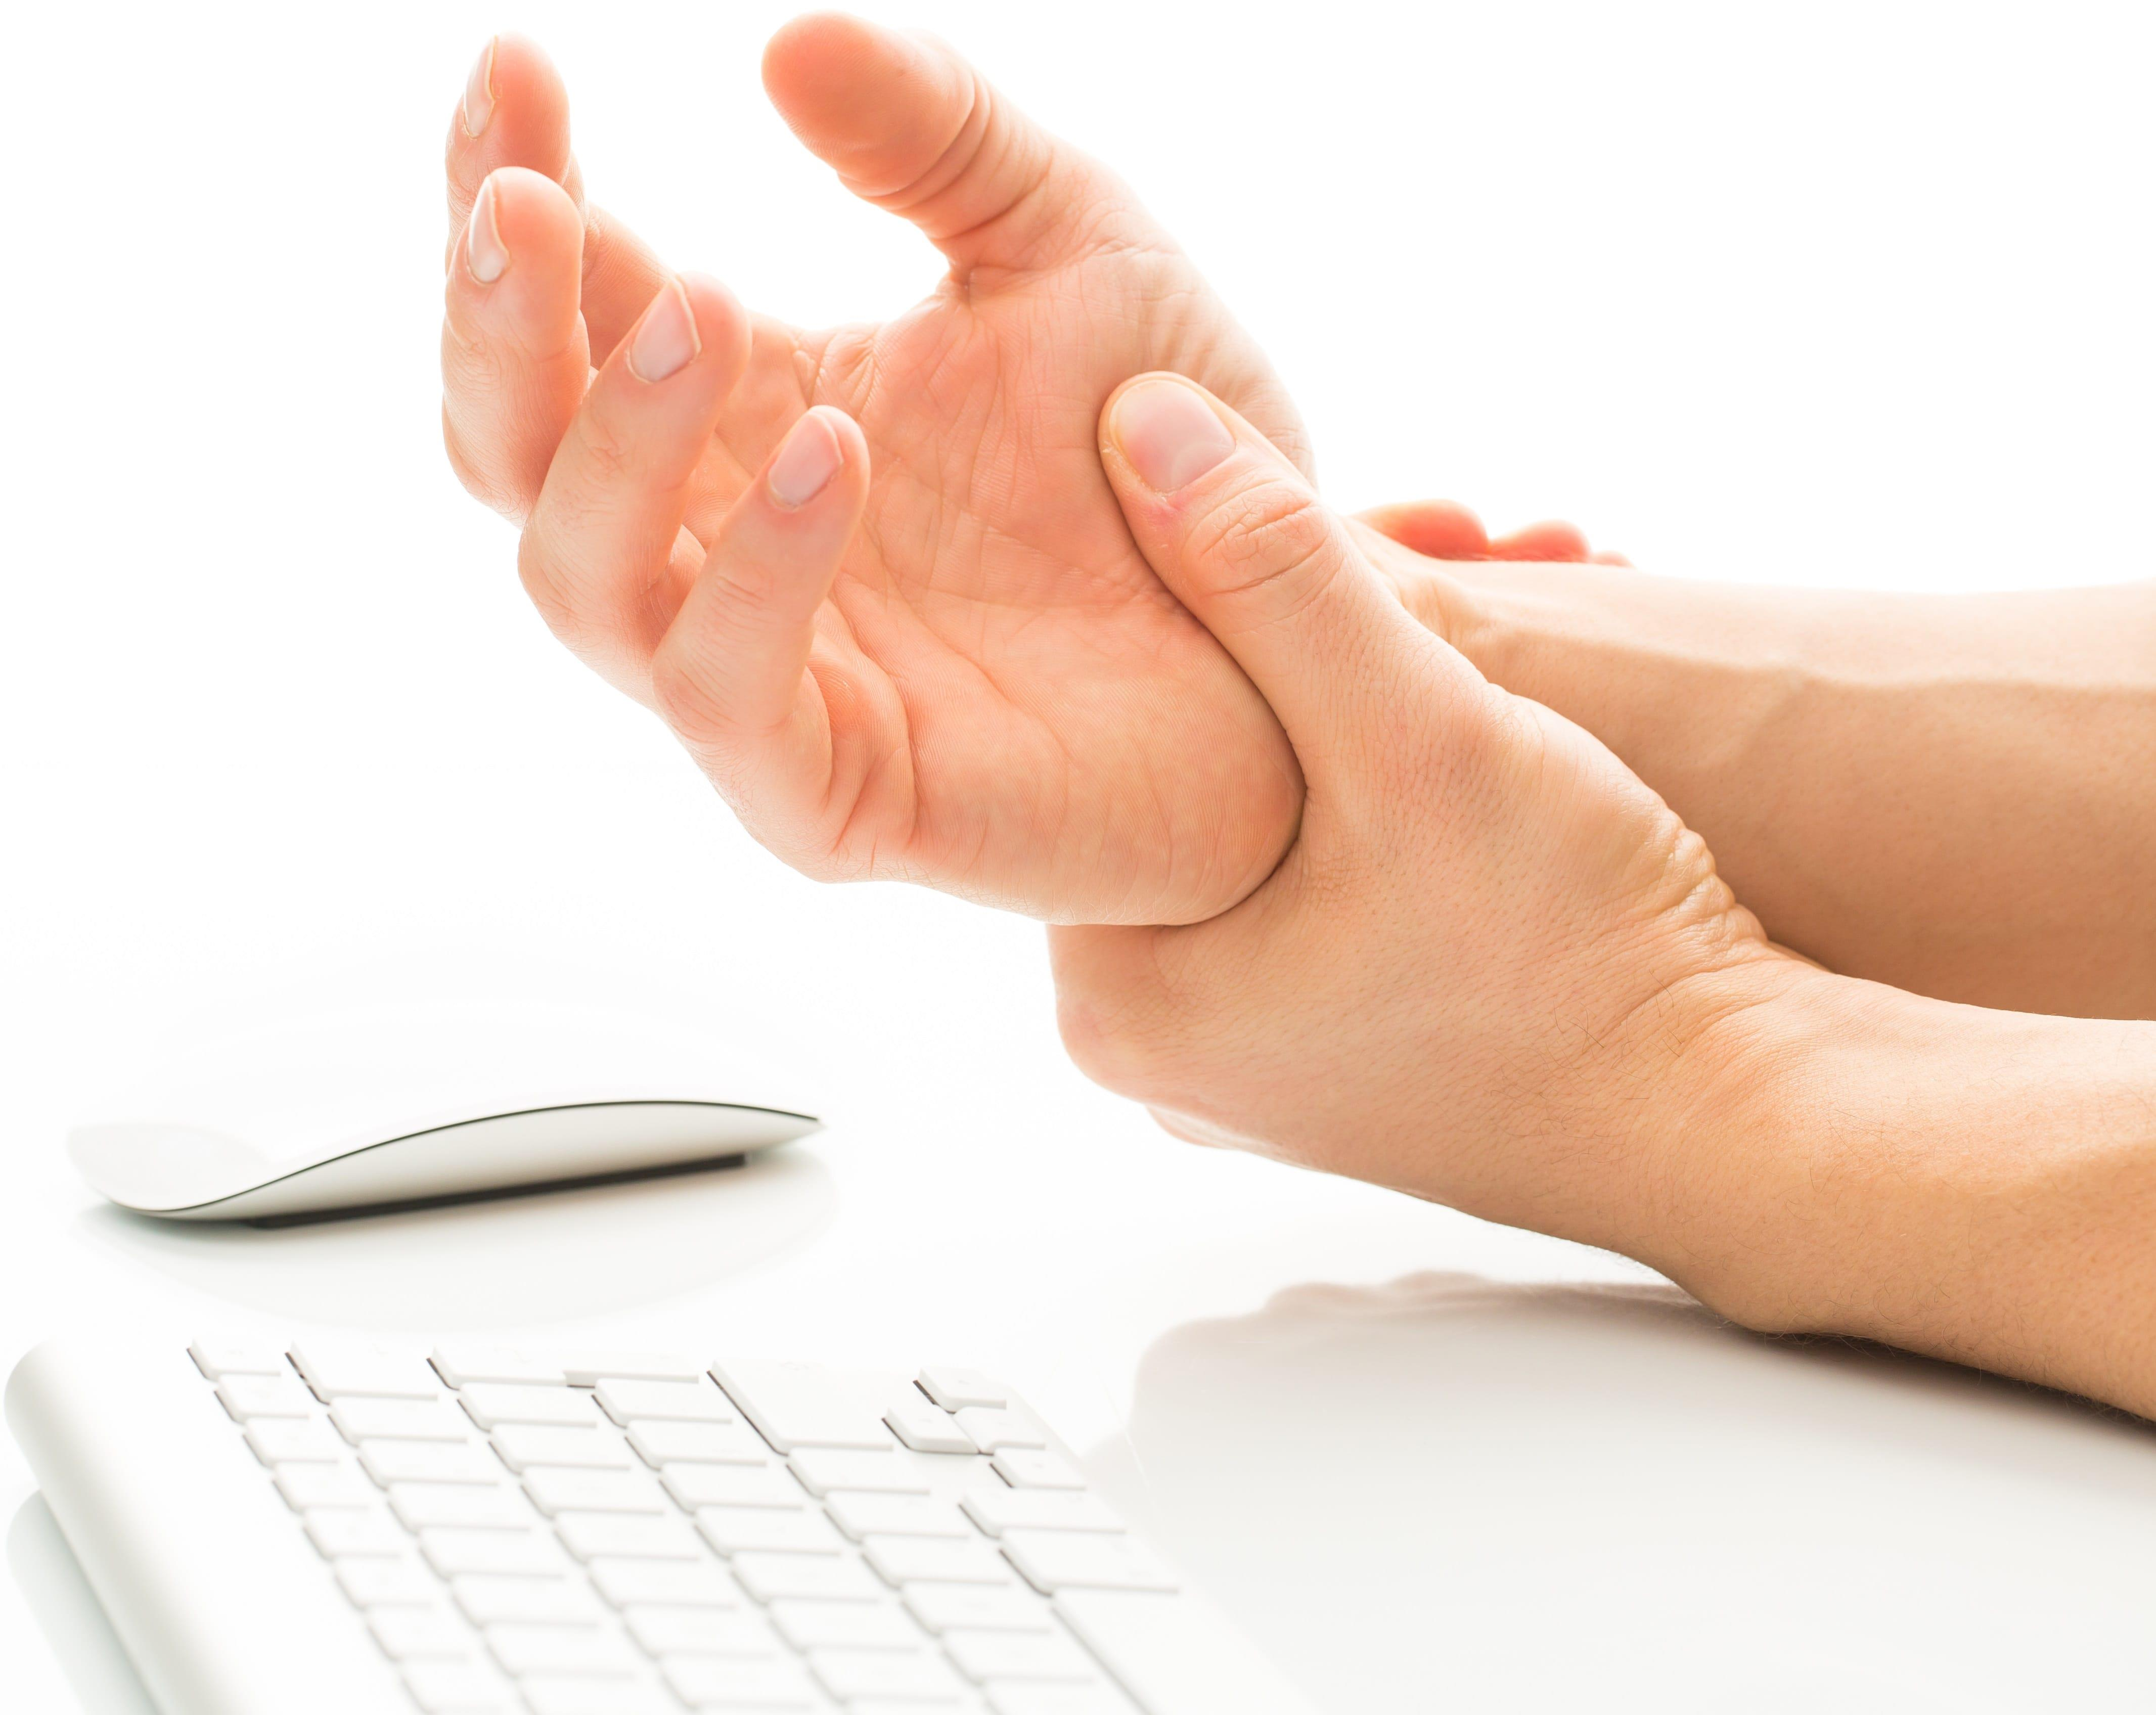 Buy Carpal Tunnel Products to treat Carpal Tunnel Syndrome